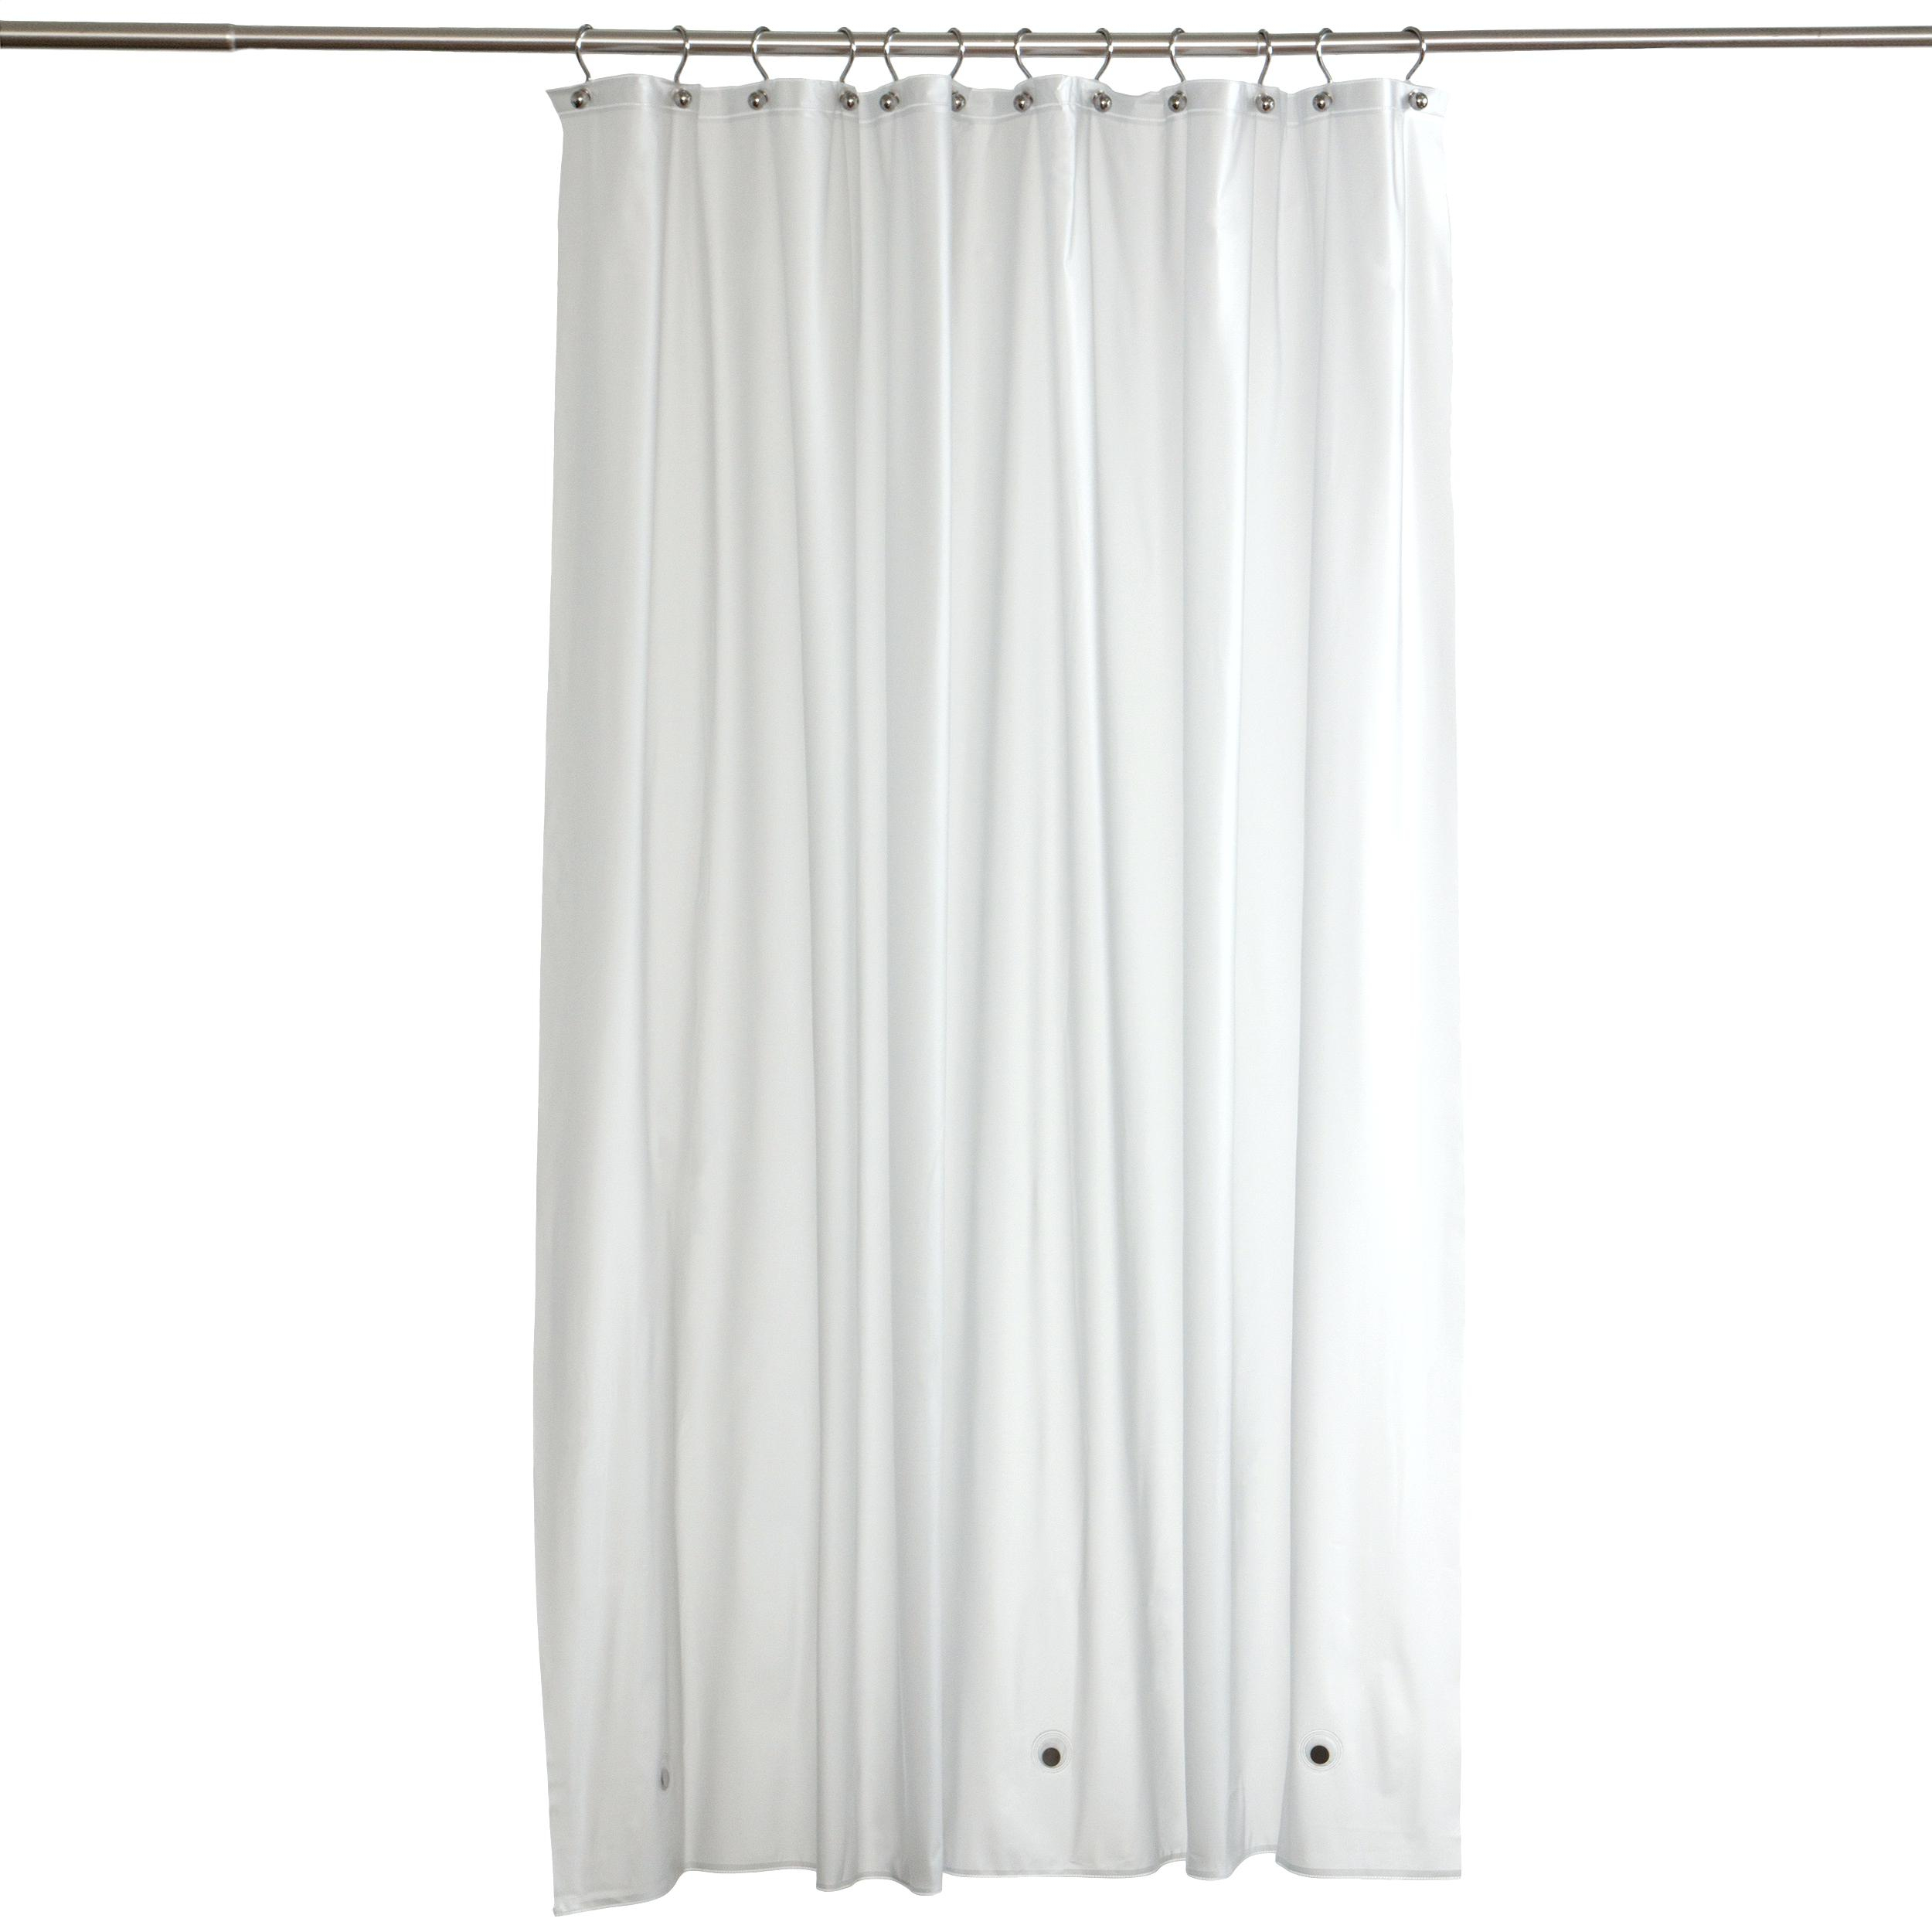 advantages of marvellous ovnerls expand to bellissimainteriors click curtain curtains white installing shower waffle